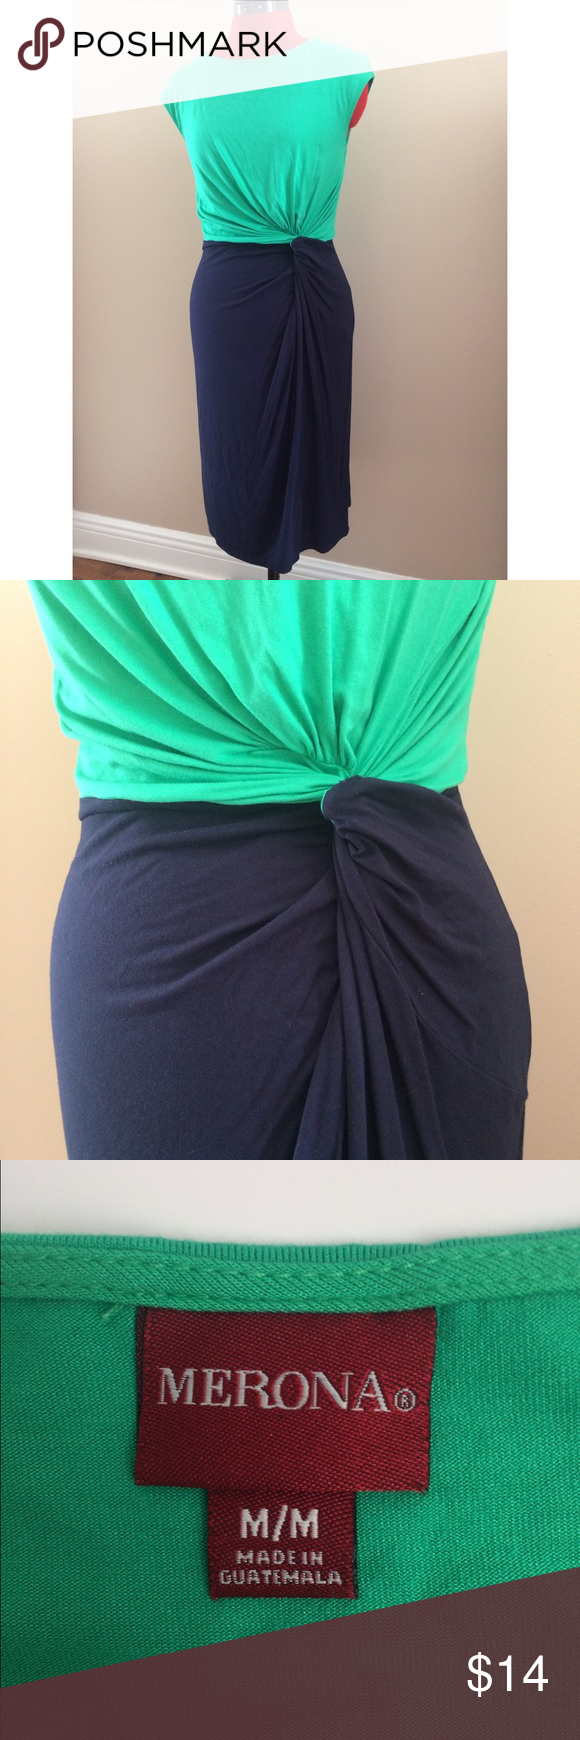 """{Merona} Summer Knotted Drape Dress Knotted drape dress. Navy and kelly green. Approx length from underarm 30"""". 95% rayon / 5% spandex. Merona Dresses"""